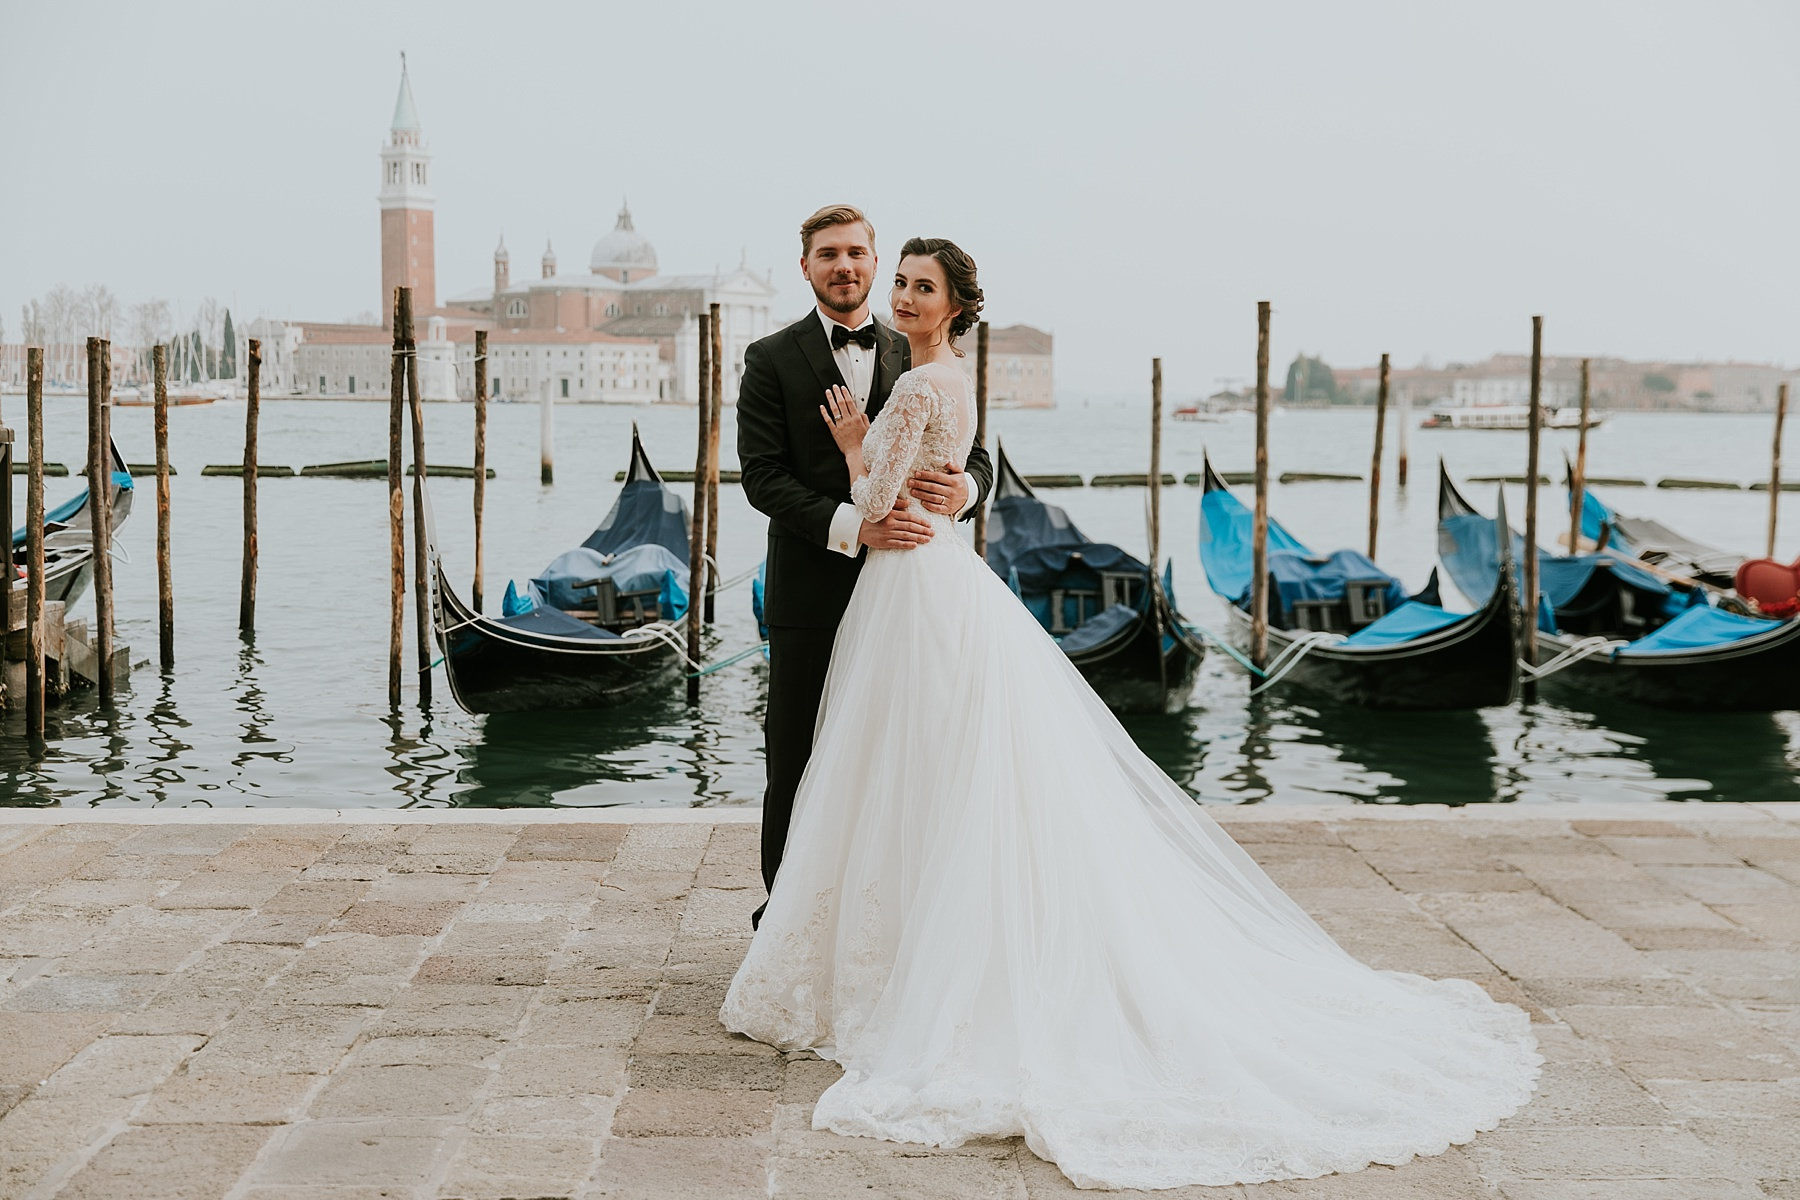 WEDDING HONEYMOON STYLED SHOOT IN VENICE